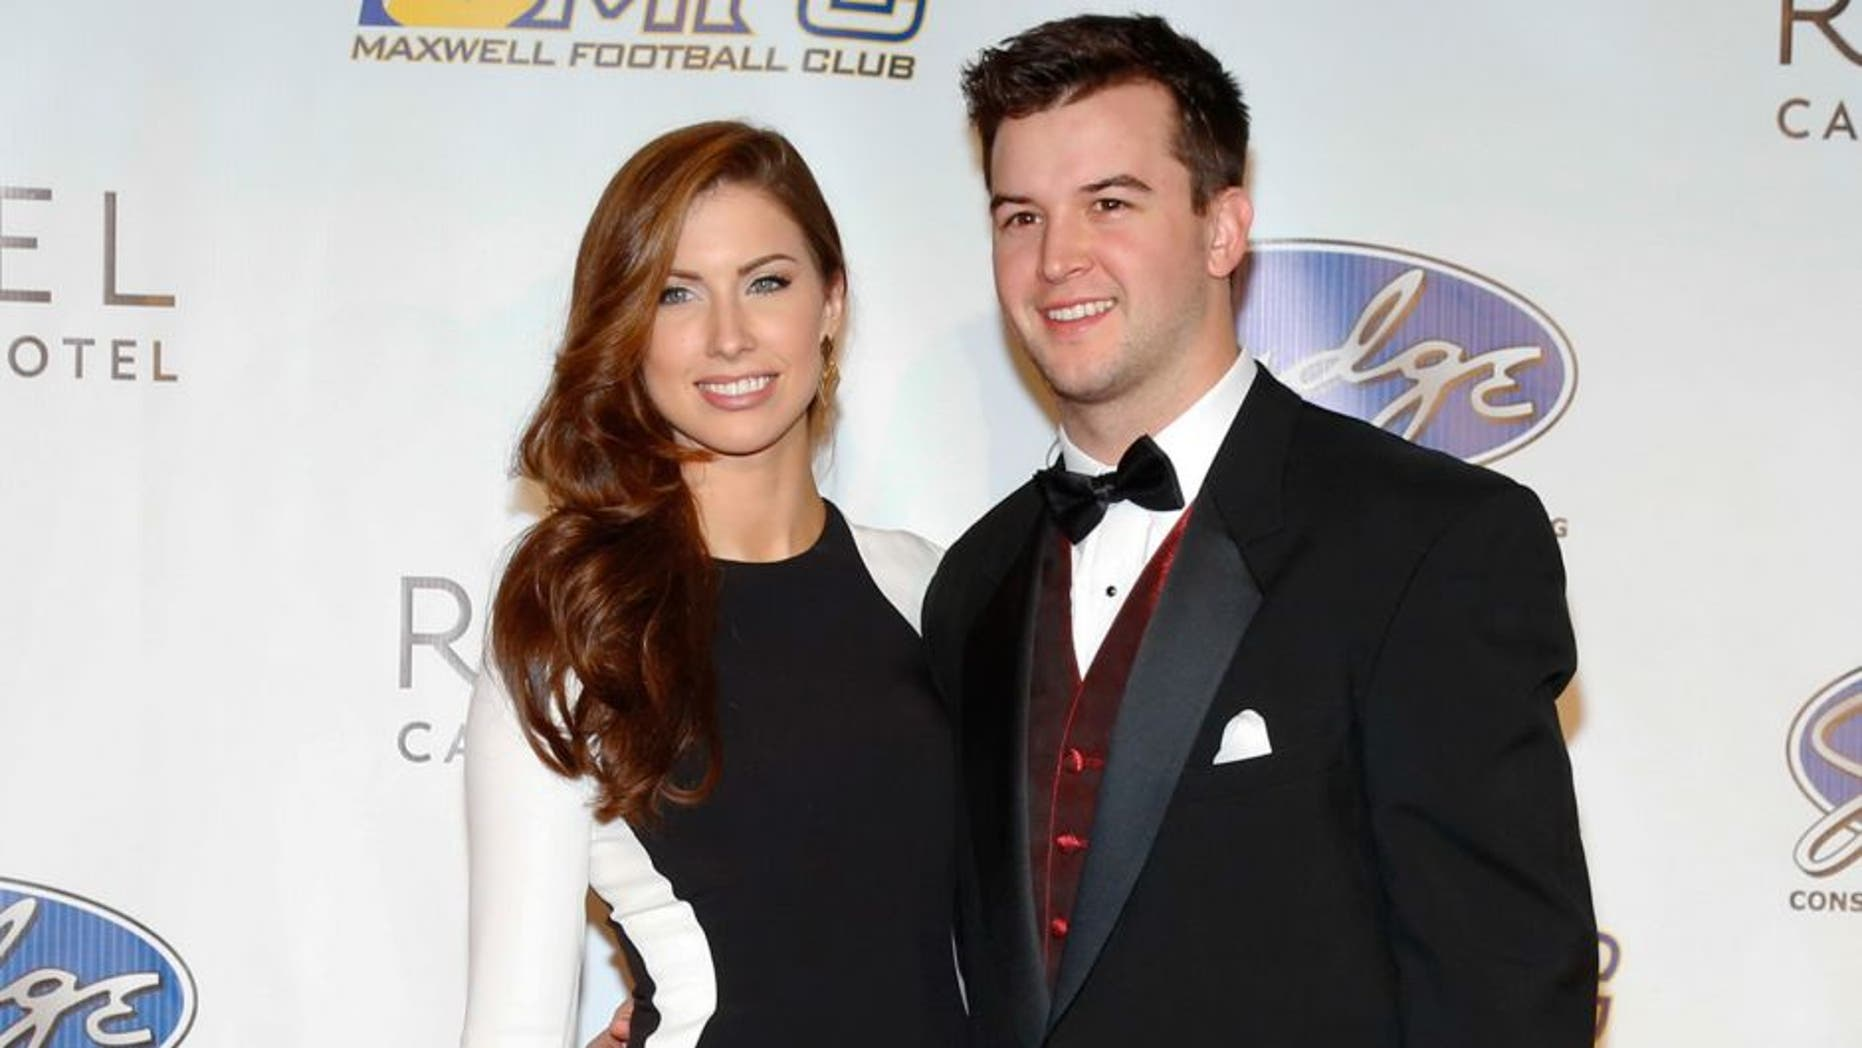 ATLANTIC CITY, NJ - MARCH 14: Former Miss Alabama Katherine Webb and University of Alabama Quarterback A.J. McCarron attend the 77th annual Maxwell Awards at Revel Casino on Friday March 14, 2014 in Atlantic City, New Jersey. (Photo by Tom Briglia/Getty Images)